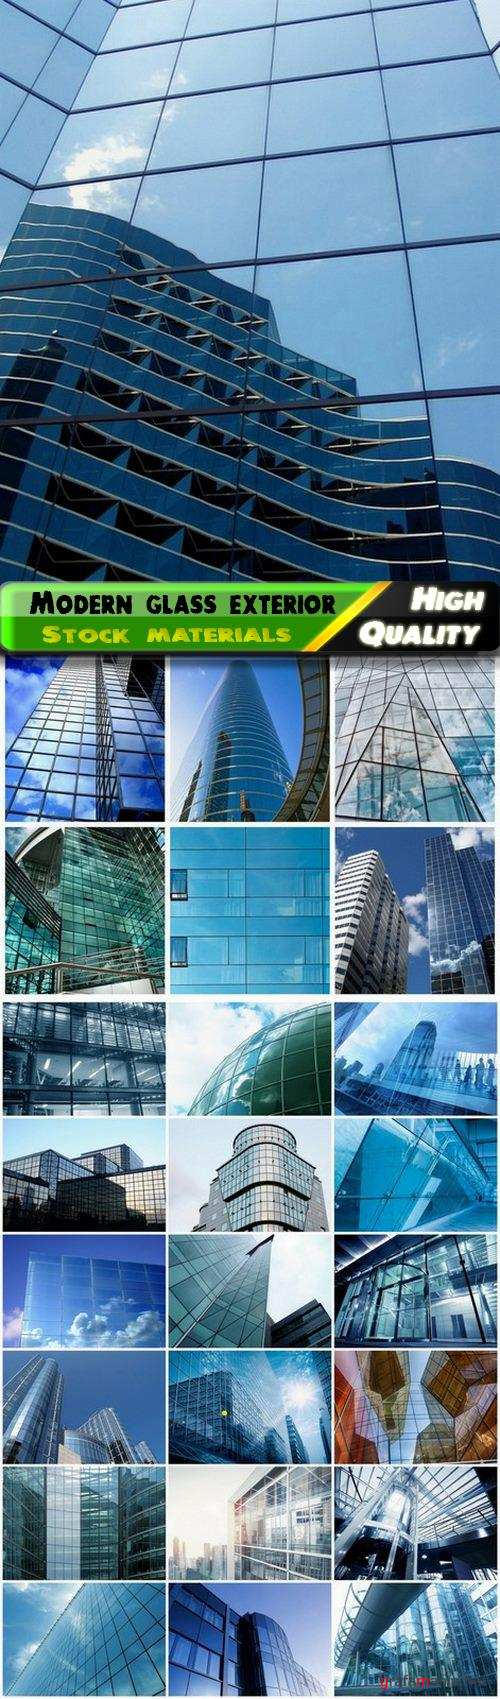 Modern exterior of glass building and office skyscraper - 25 HQ Jpg